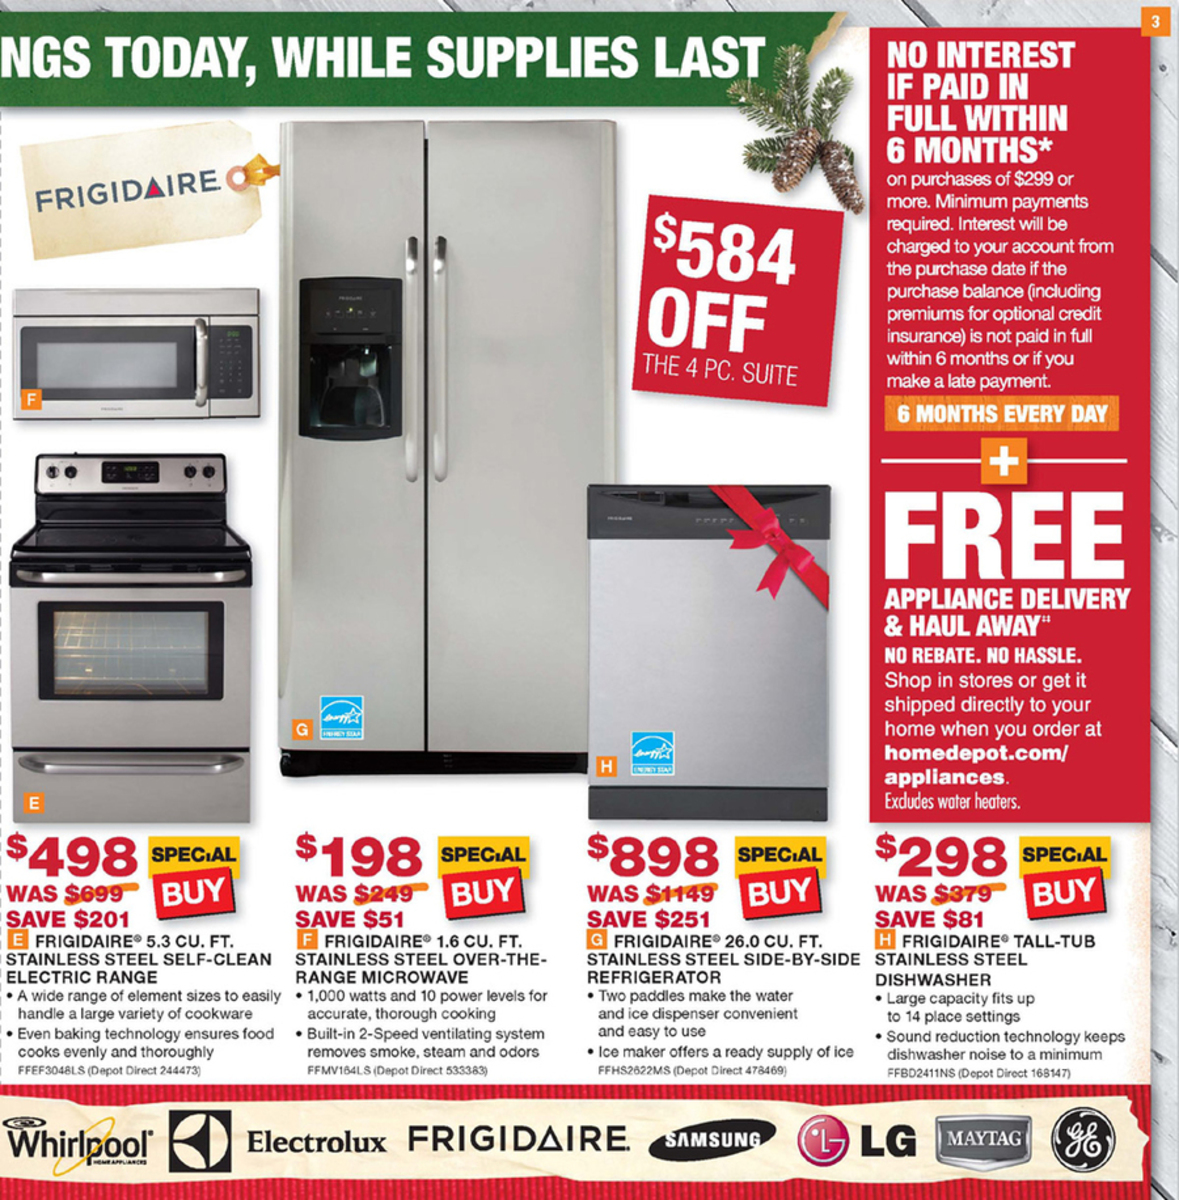 home-depot-black-friday-preview-2013-4